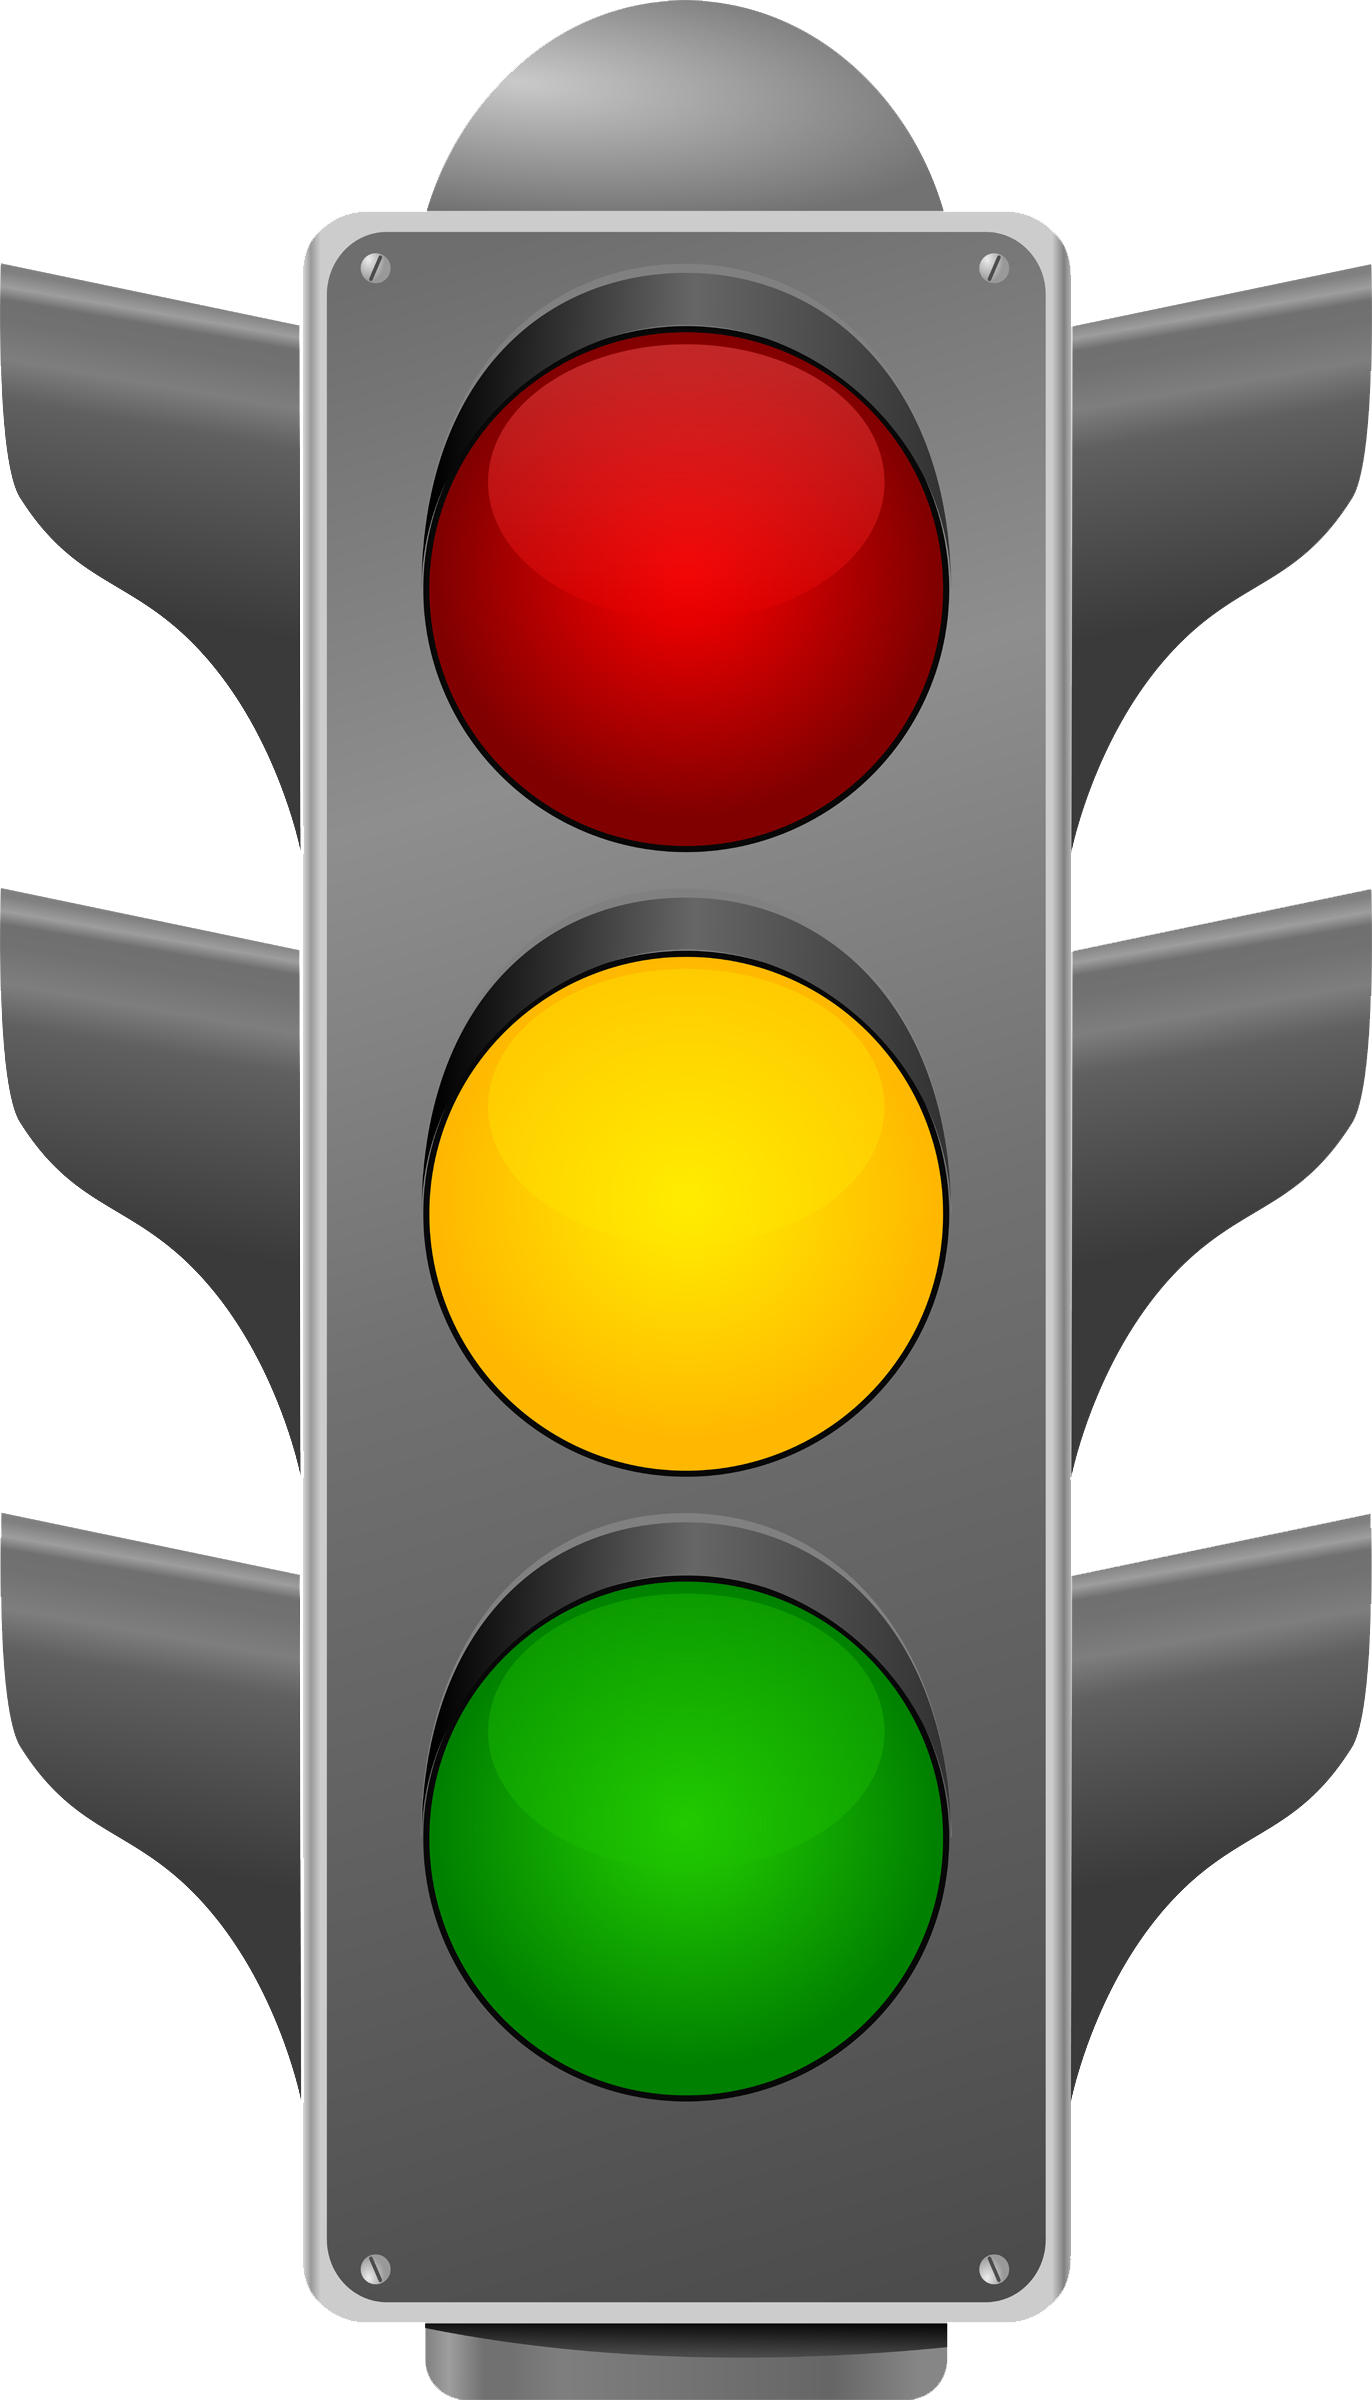 Traffic light png. Transparent images all